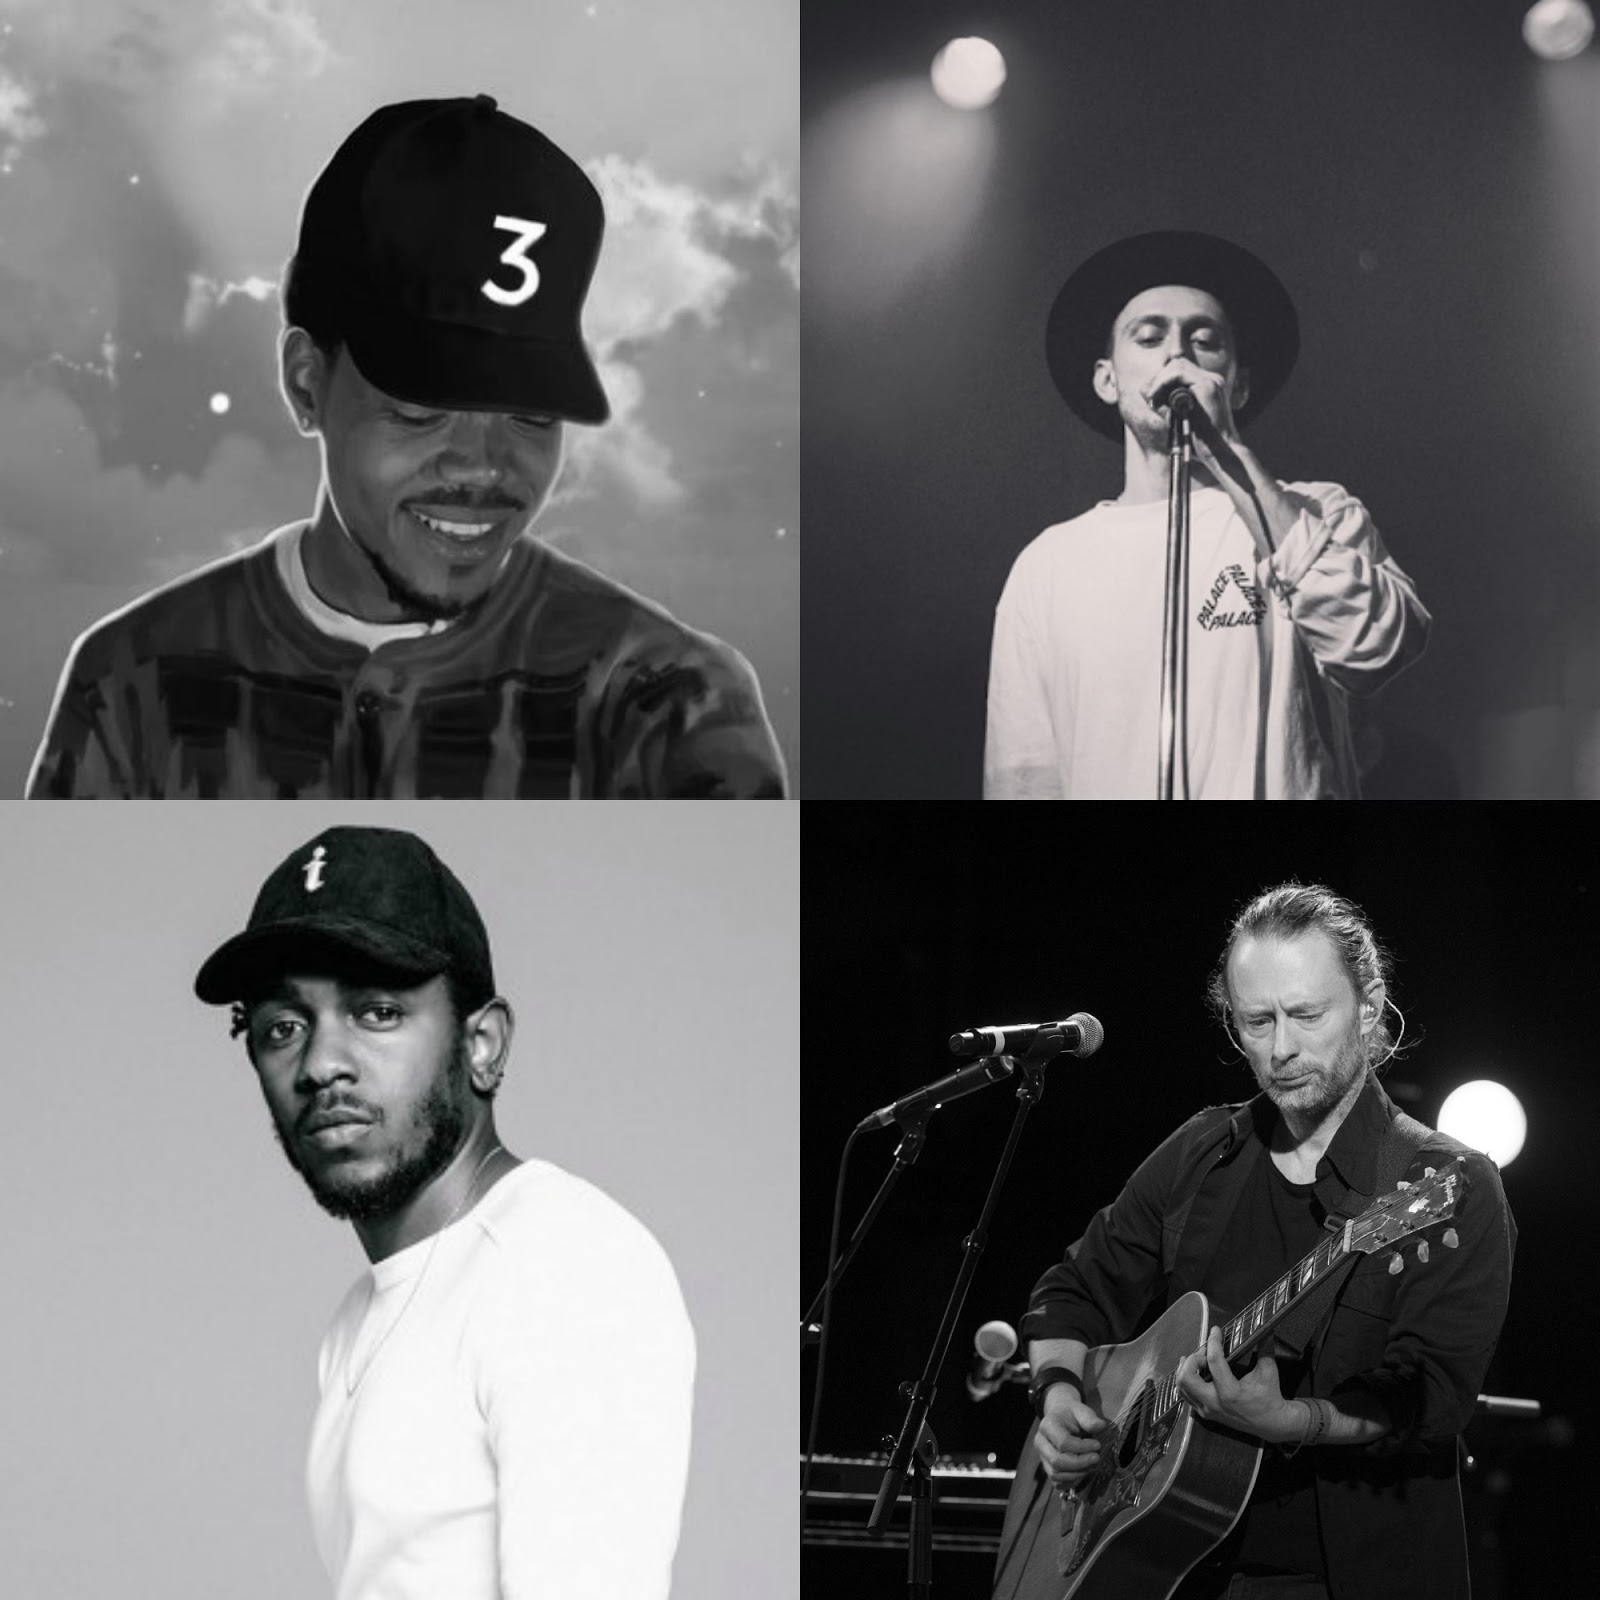 Chance coloring book samples - Author Admin Category 2 Chainz A Moon Shaped Pool Band Of Horses Chance 3 Chance The Rapper Coloring Book J Mascis Kendrick Lamar Lil Wayne